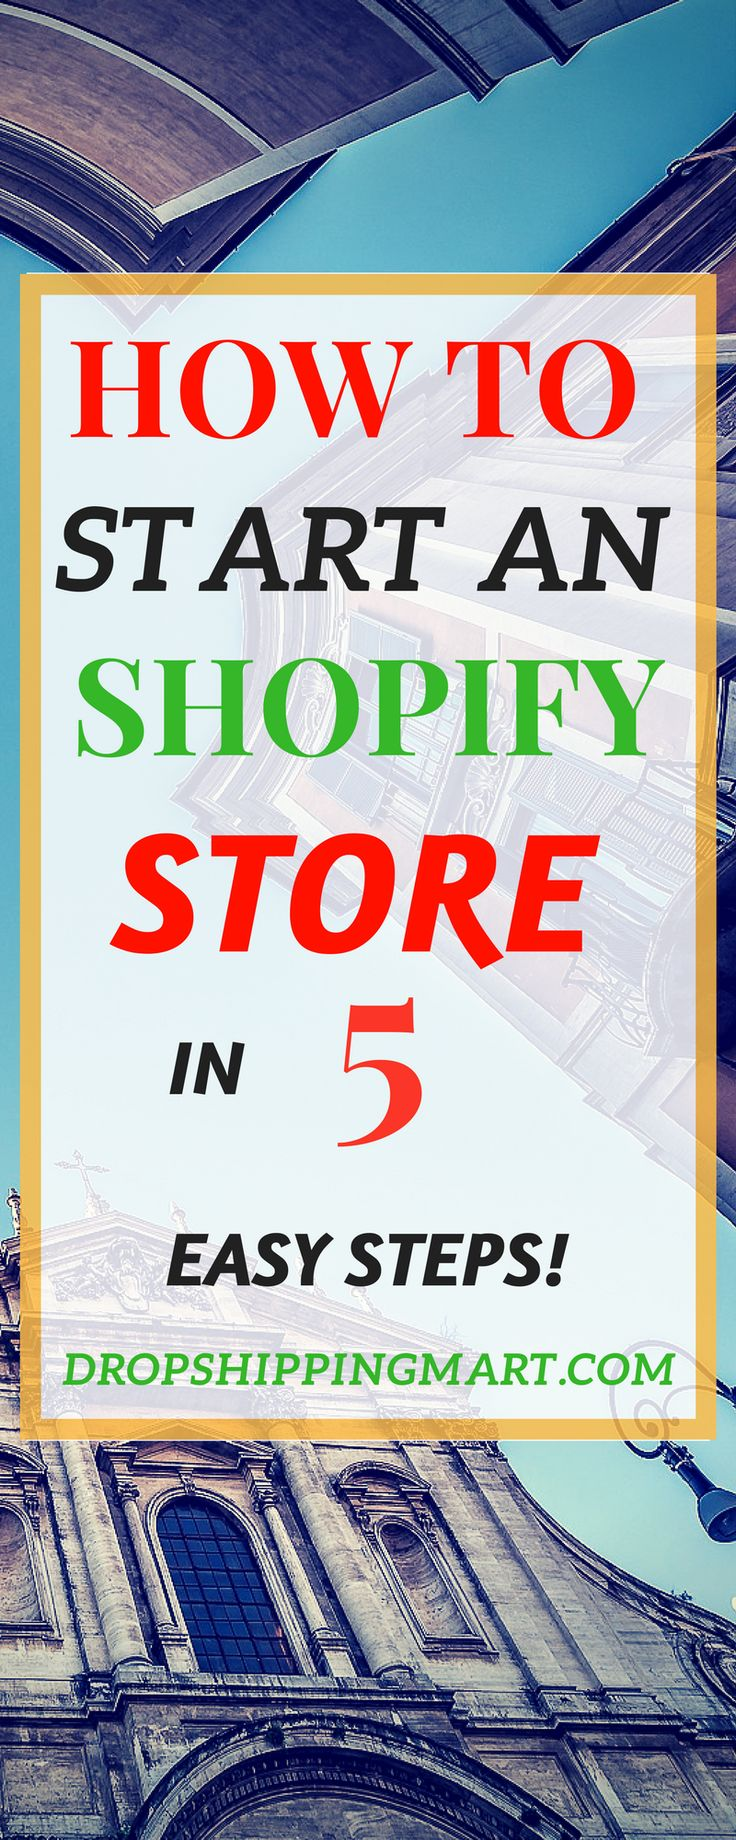 How to start an shopify store in 5 easy steps. Easy ways to start a drop shipping stores . Check it out